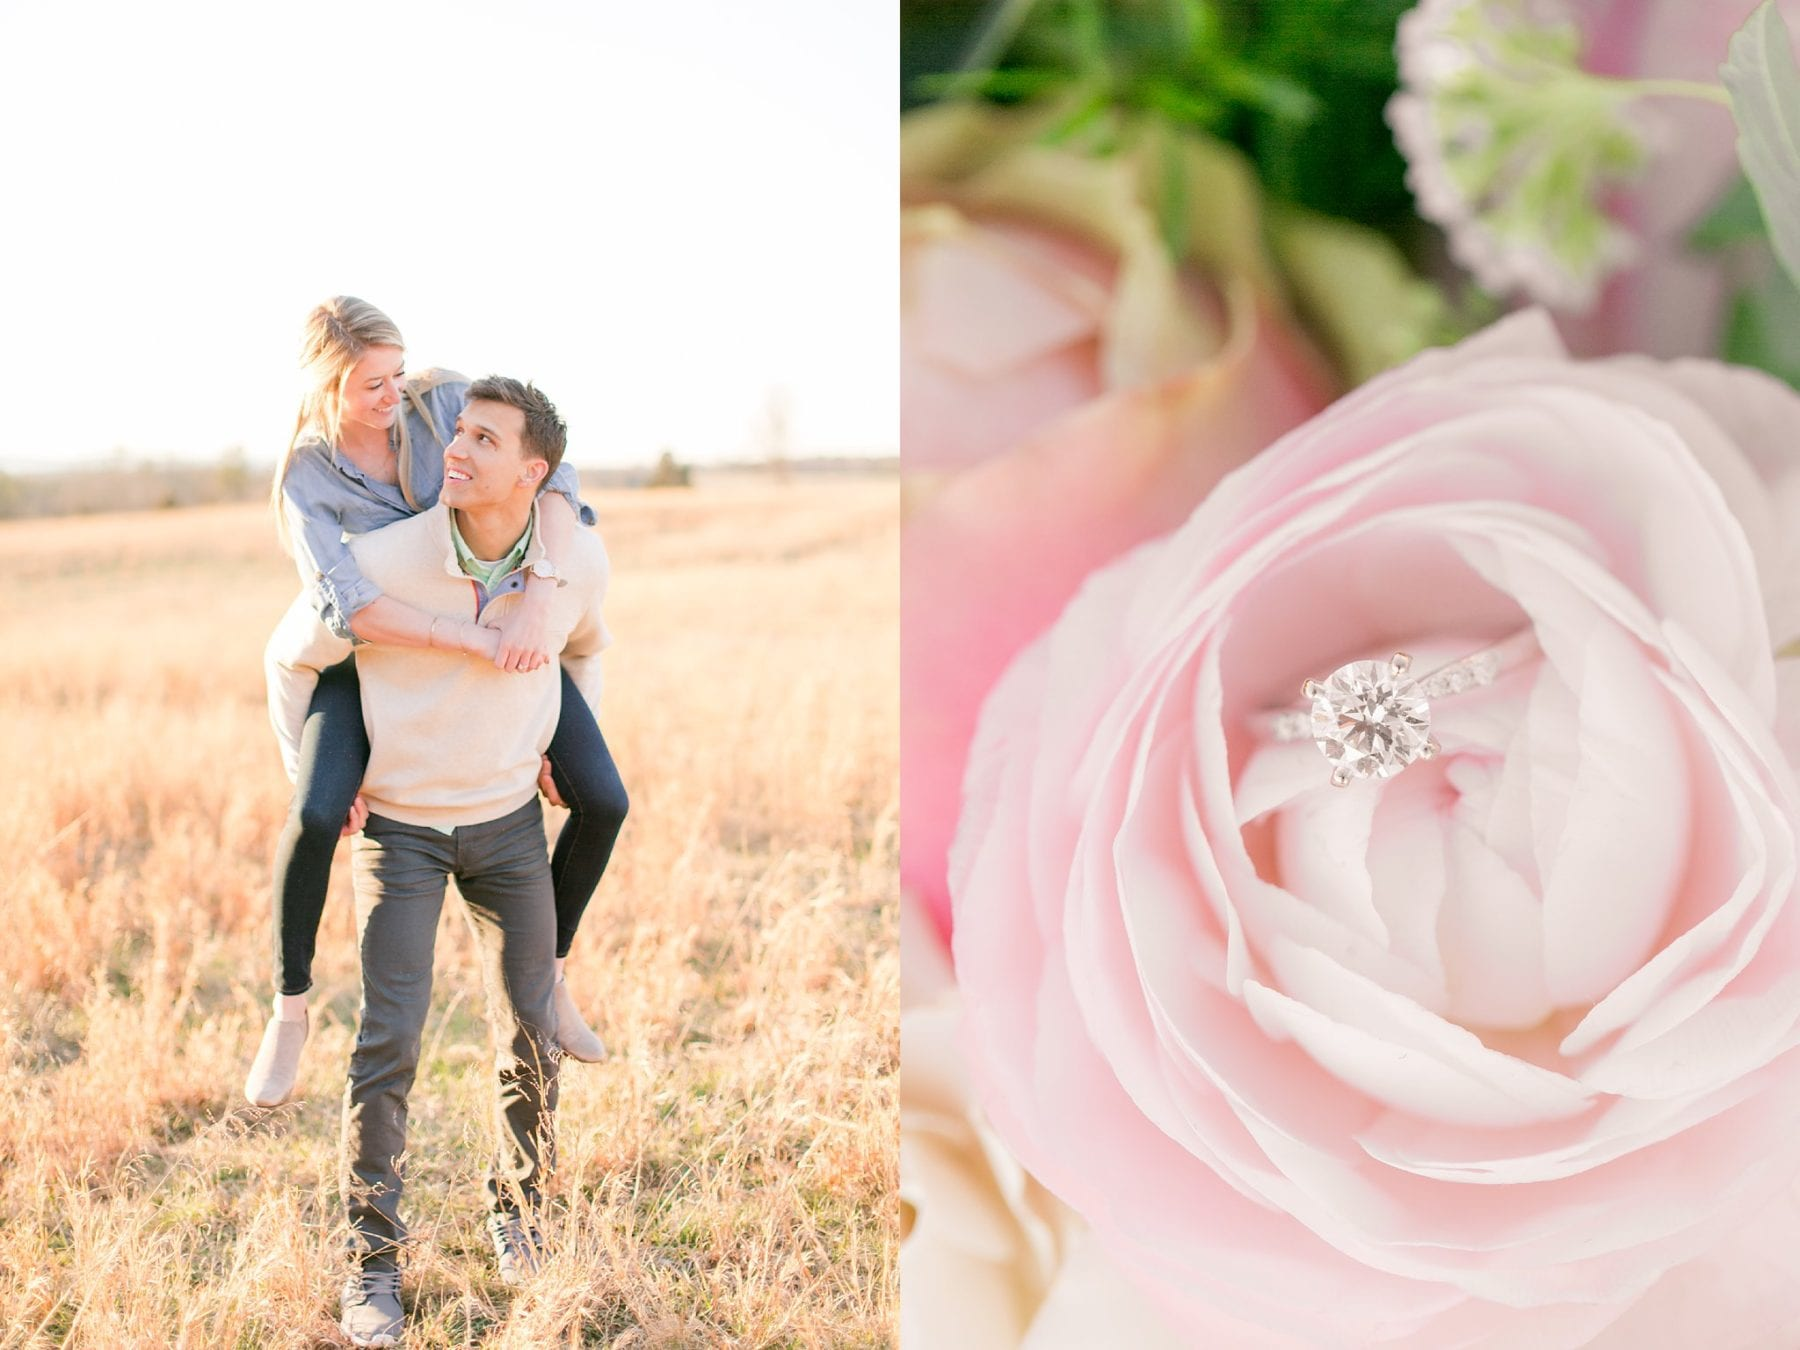 Manassas Battlefield Engagement Session Virginia Wedding Photographer Danielle & Charlie Megan Kelsey Photography-5829.jpg